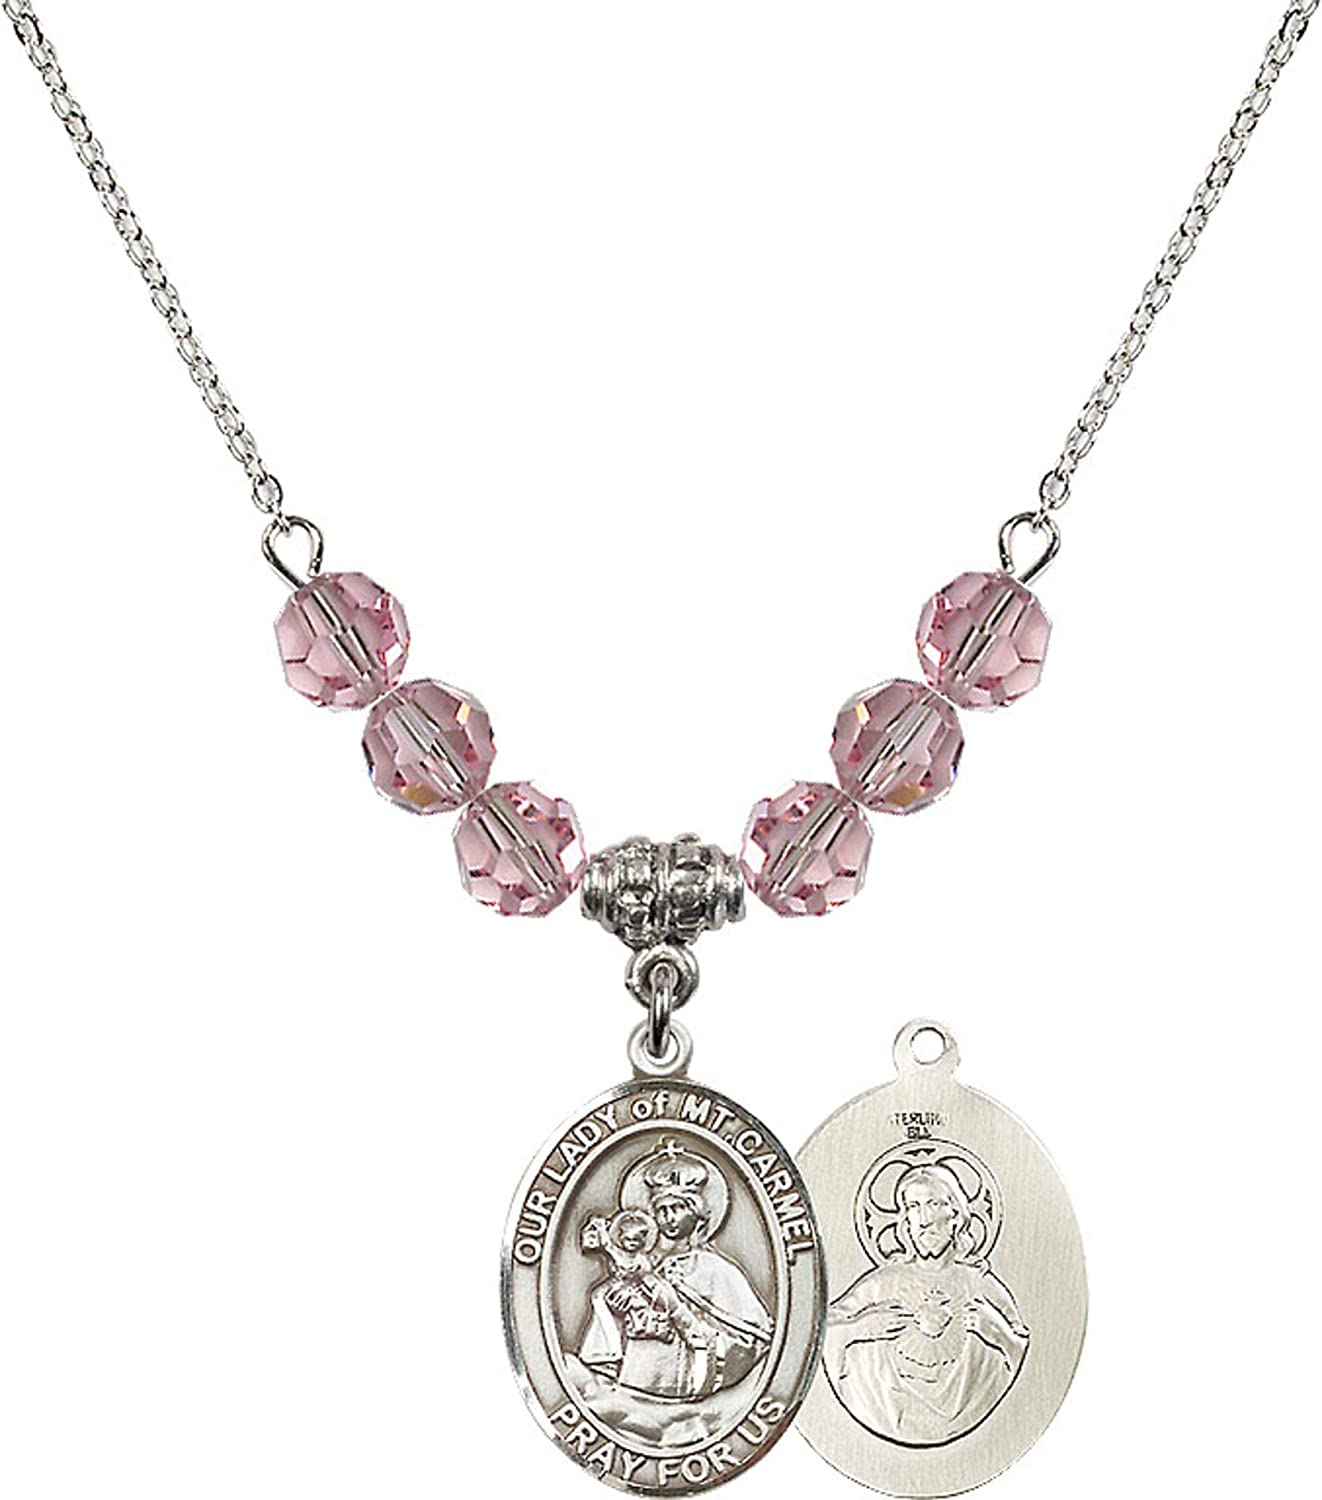 Bonyak Jewelry 18 Inch Rhodium Plated Necklace w// 6mm Light Rose Pink October Birth Month Stone Beads and Our Lady of Mount Carmel Charm